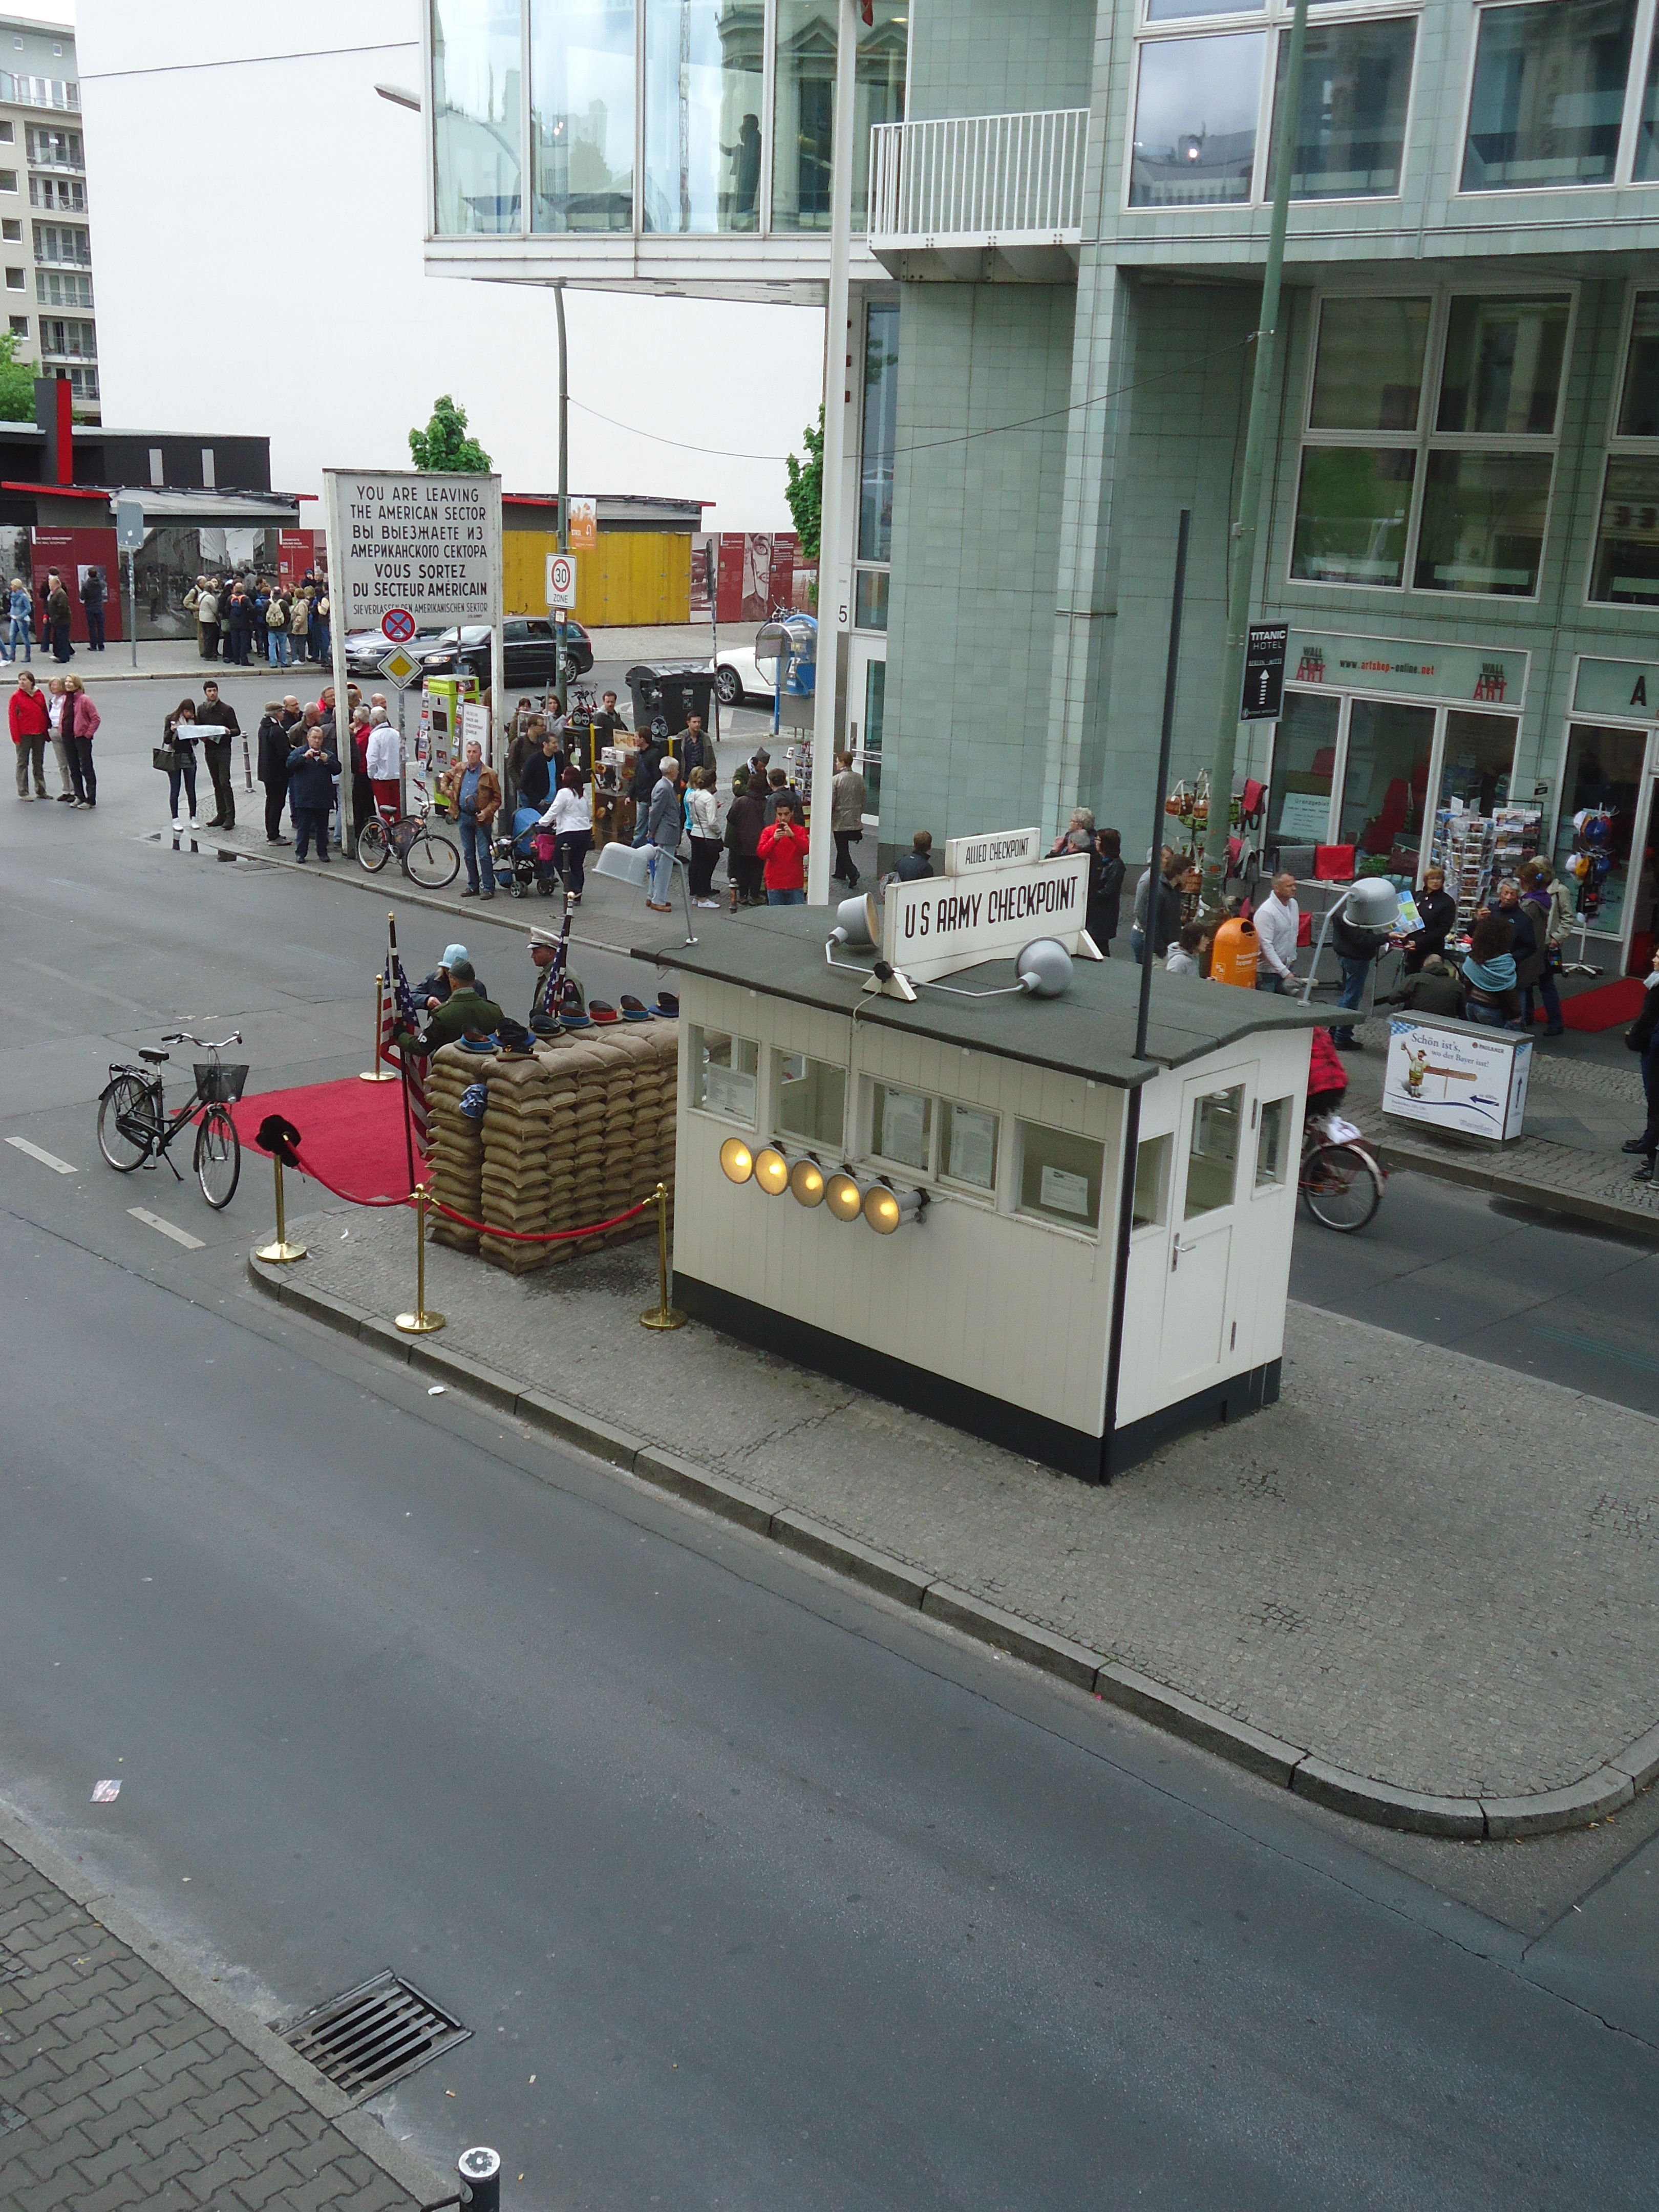 Germany Checkpoint Charlie Dbbcbcaababfeaa